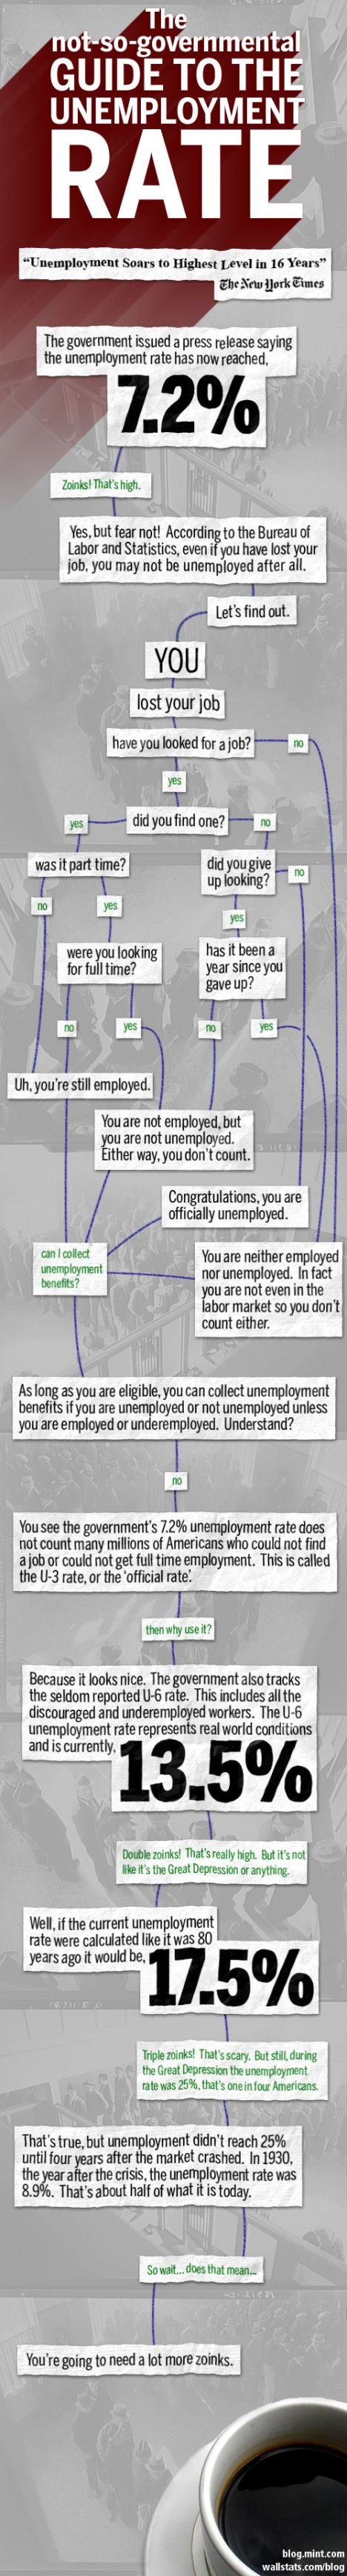 the-unemployment-rate